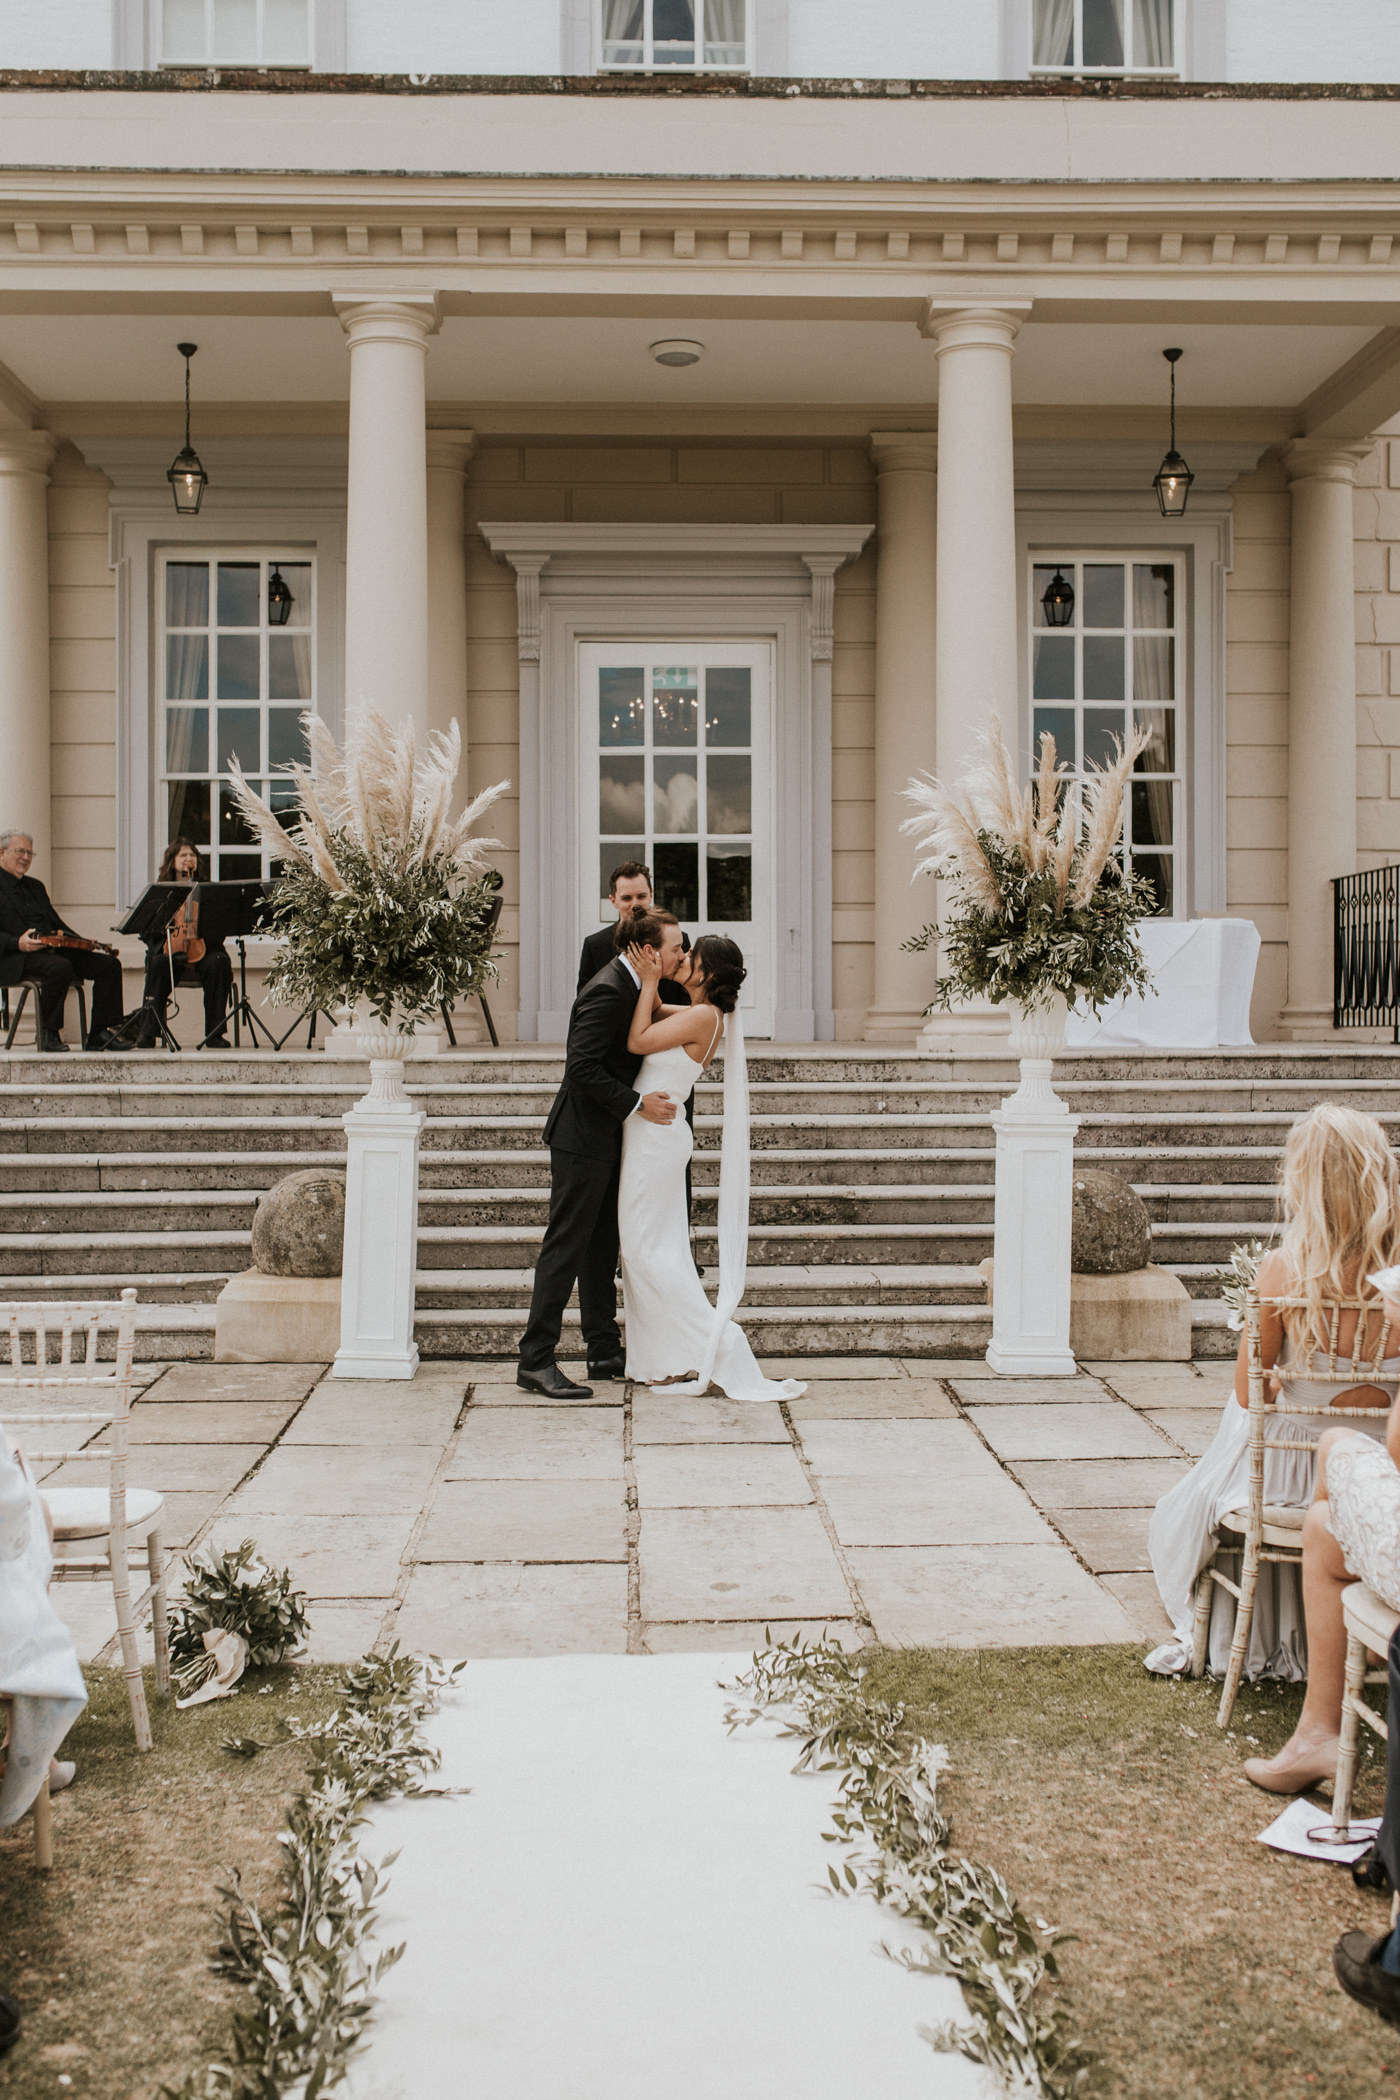 Outdoor wedding ceremony at Buxted Park Hotel, Sussex. Photo by Nataly J Photography